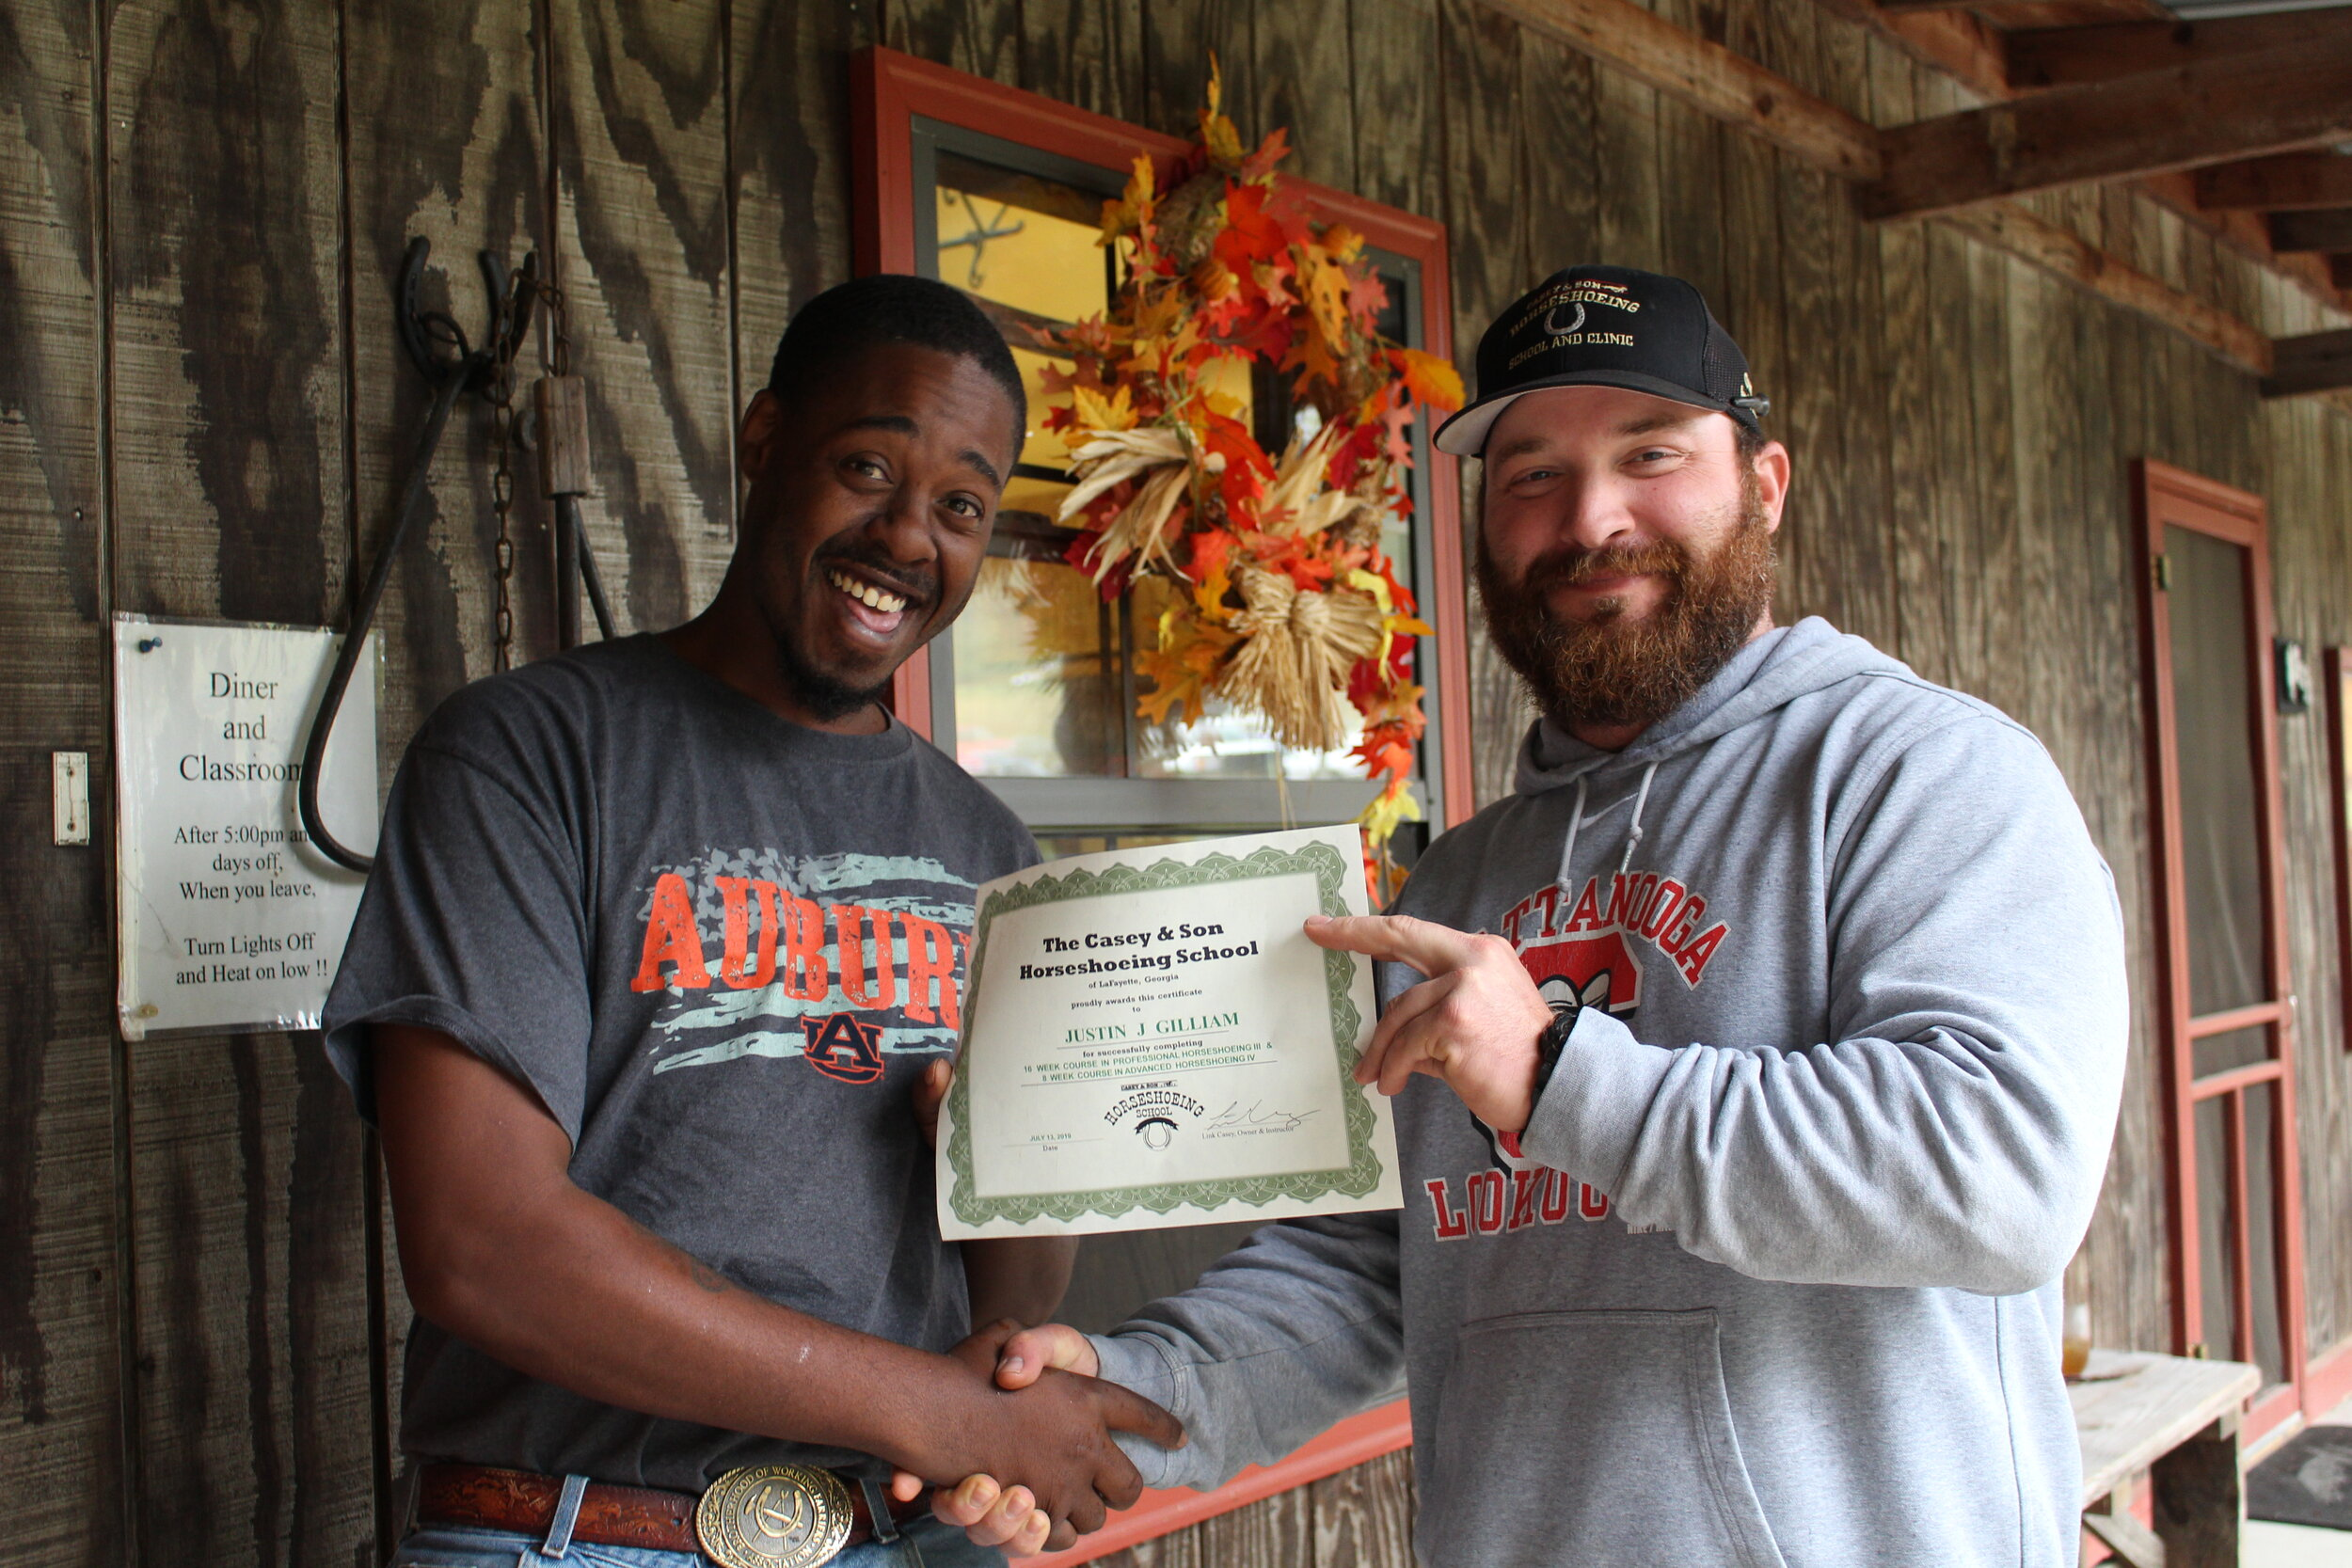 Justin Gilliam pictured here with BWFA President and Owner-/Instructor of Casey & Son Horseshoeing School, Link Casey.